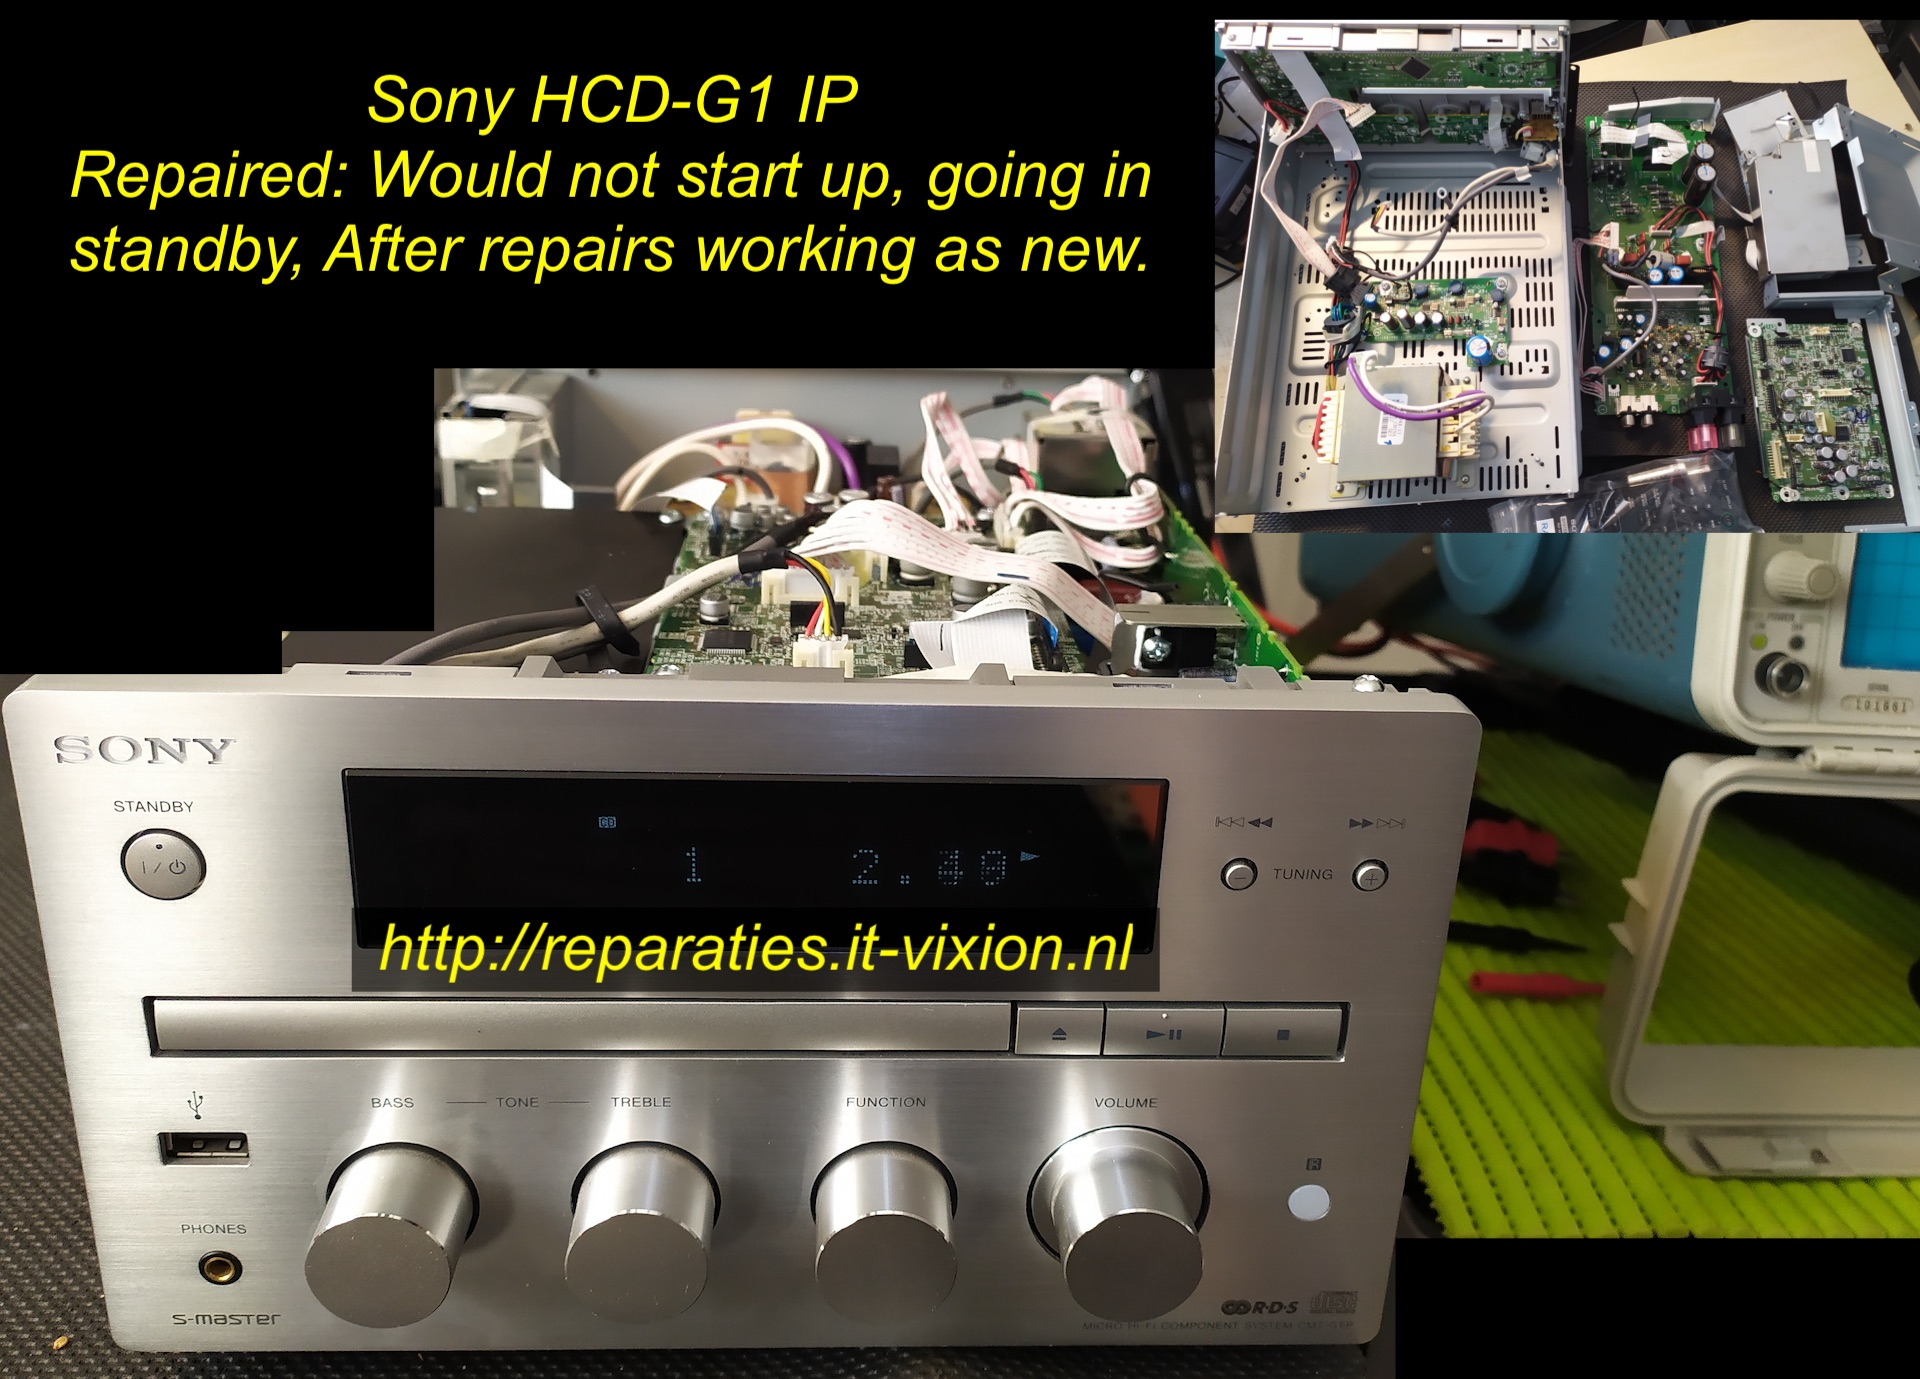 Sony hcd-G1 IP